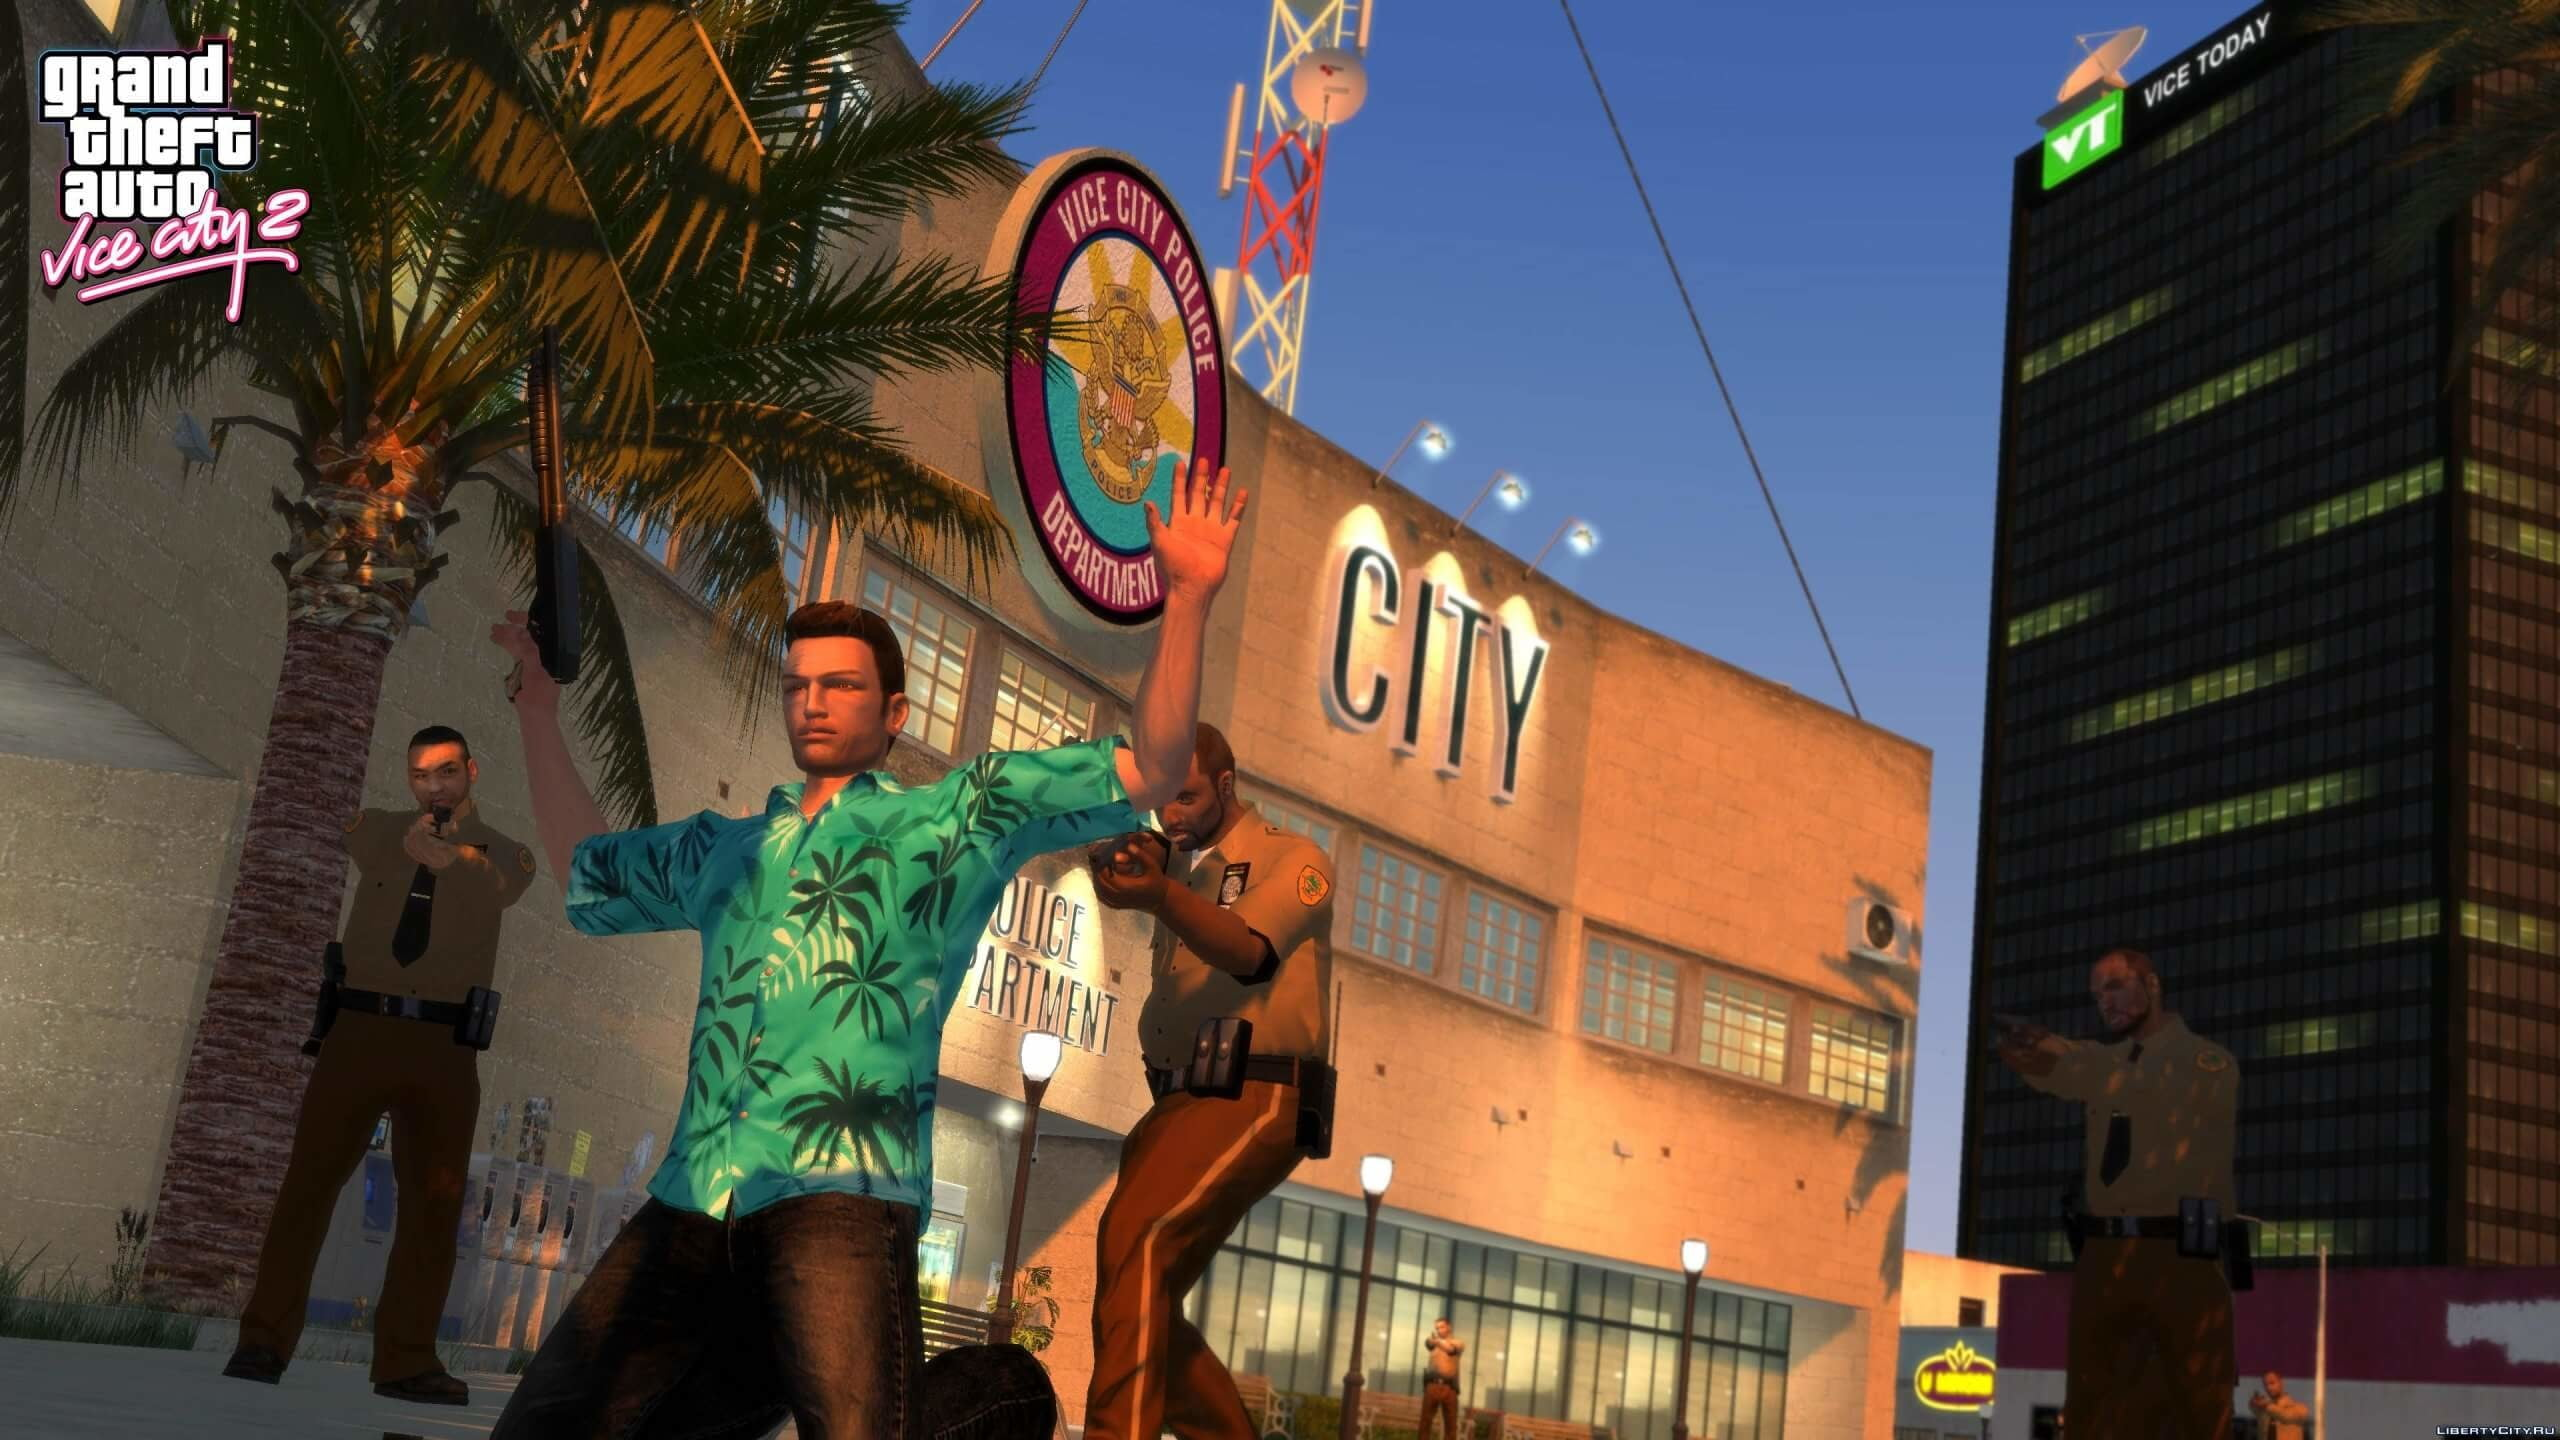 rermaster no oficial gta vice city 1grand theft auto 2 remaster 1 scaled